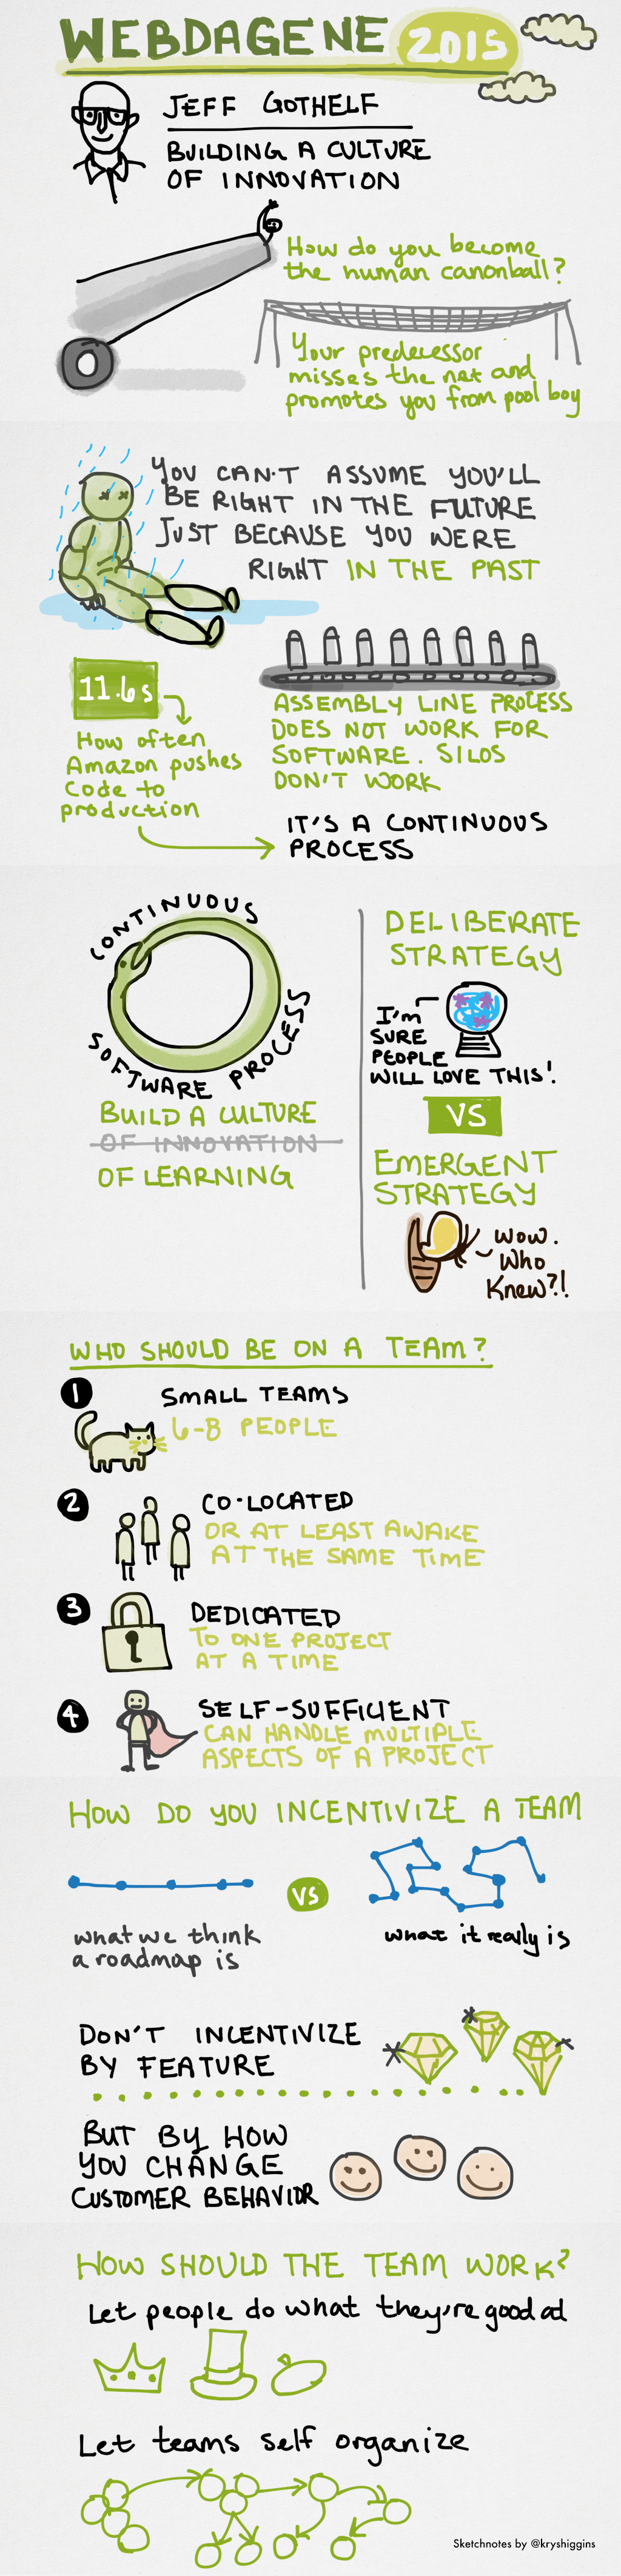 Sketchnotes from Building a culture of innovation